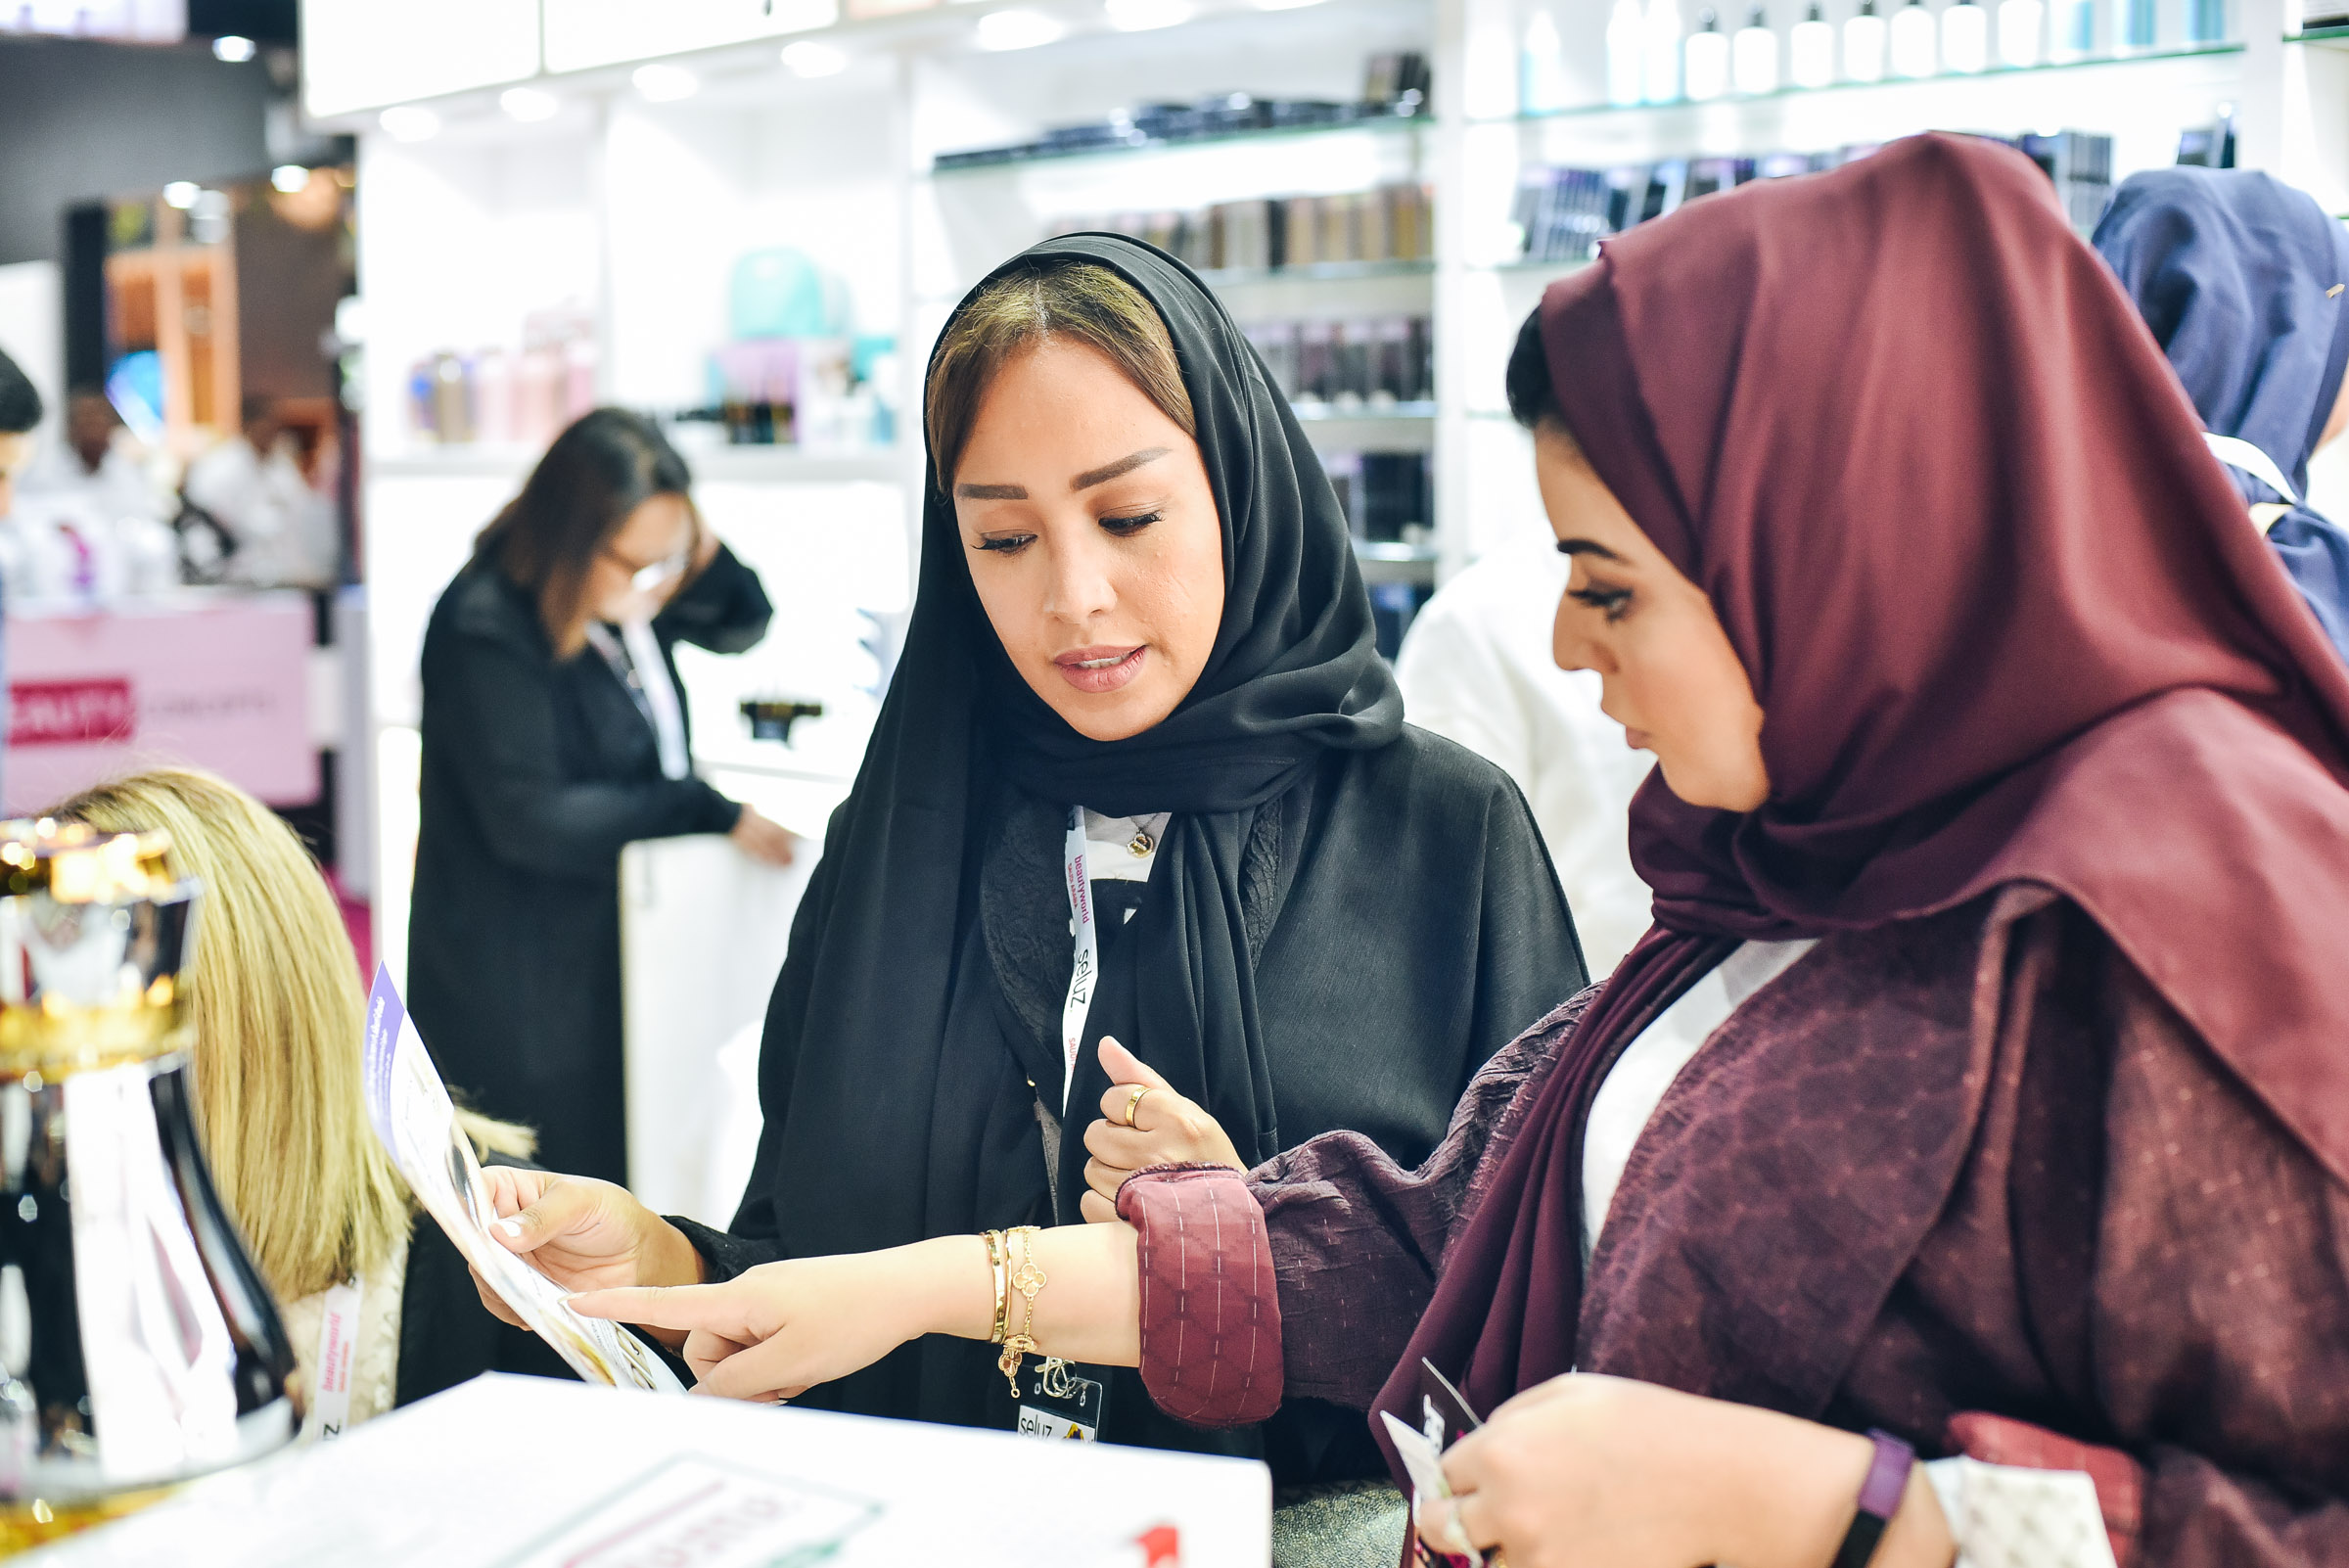 Beautyworld Saudi Arabia - 2019 edition